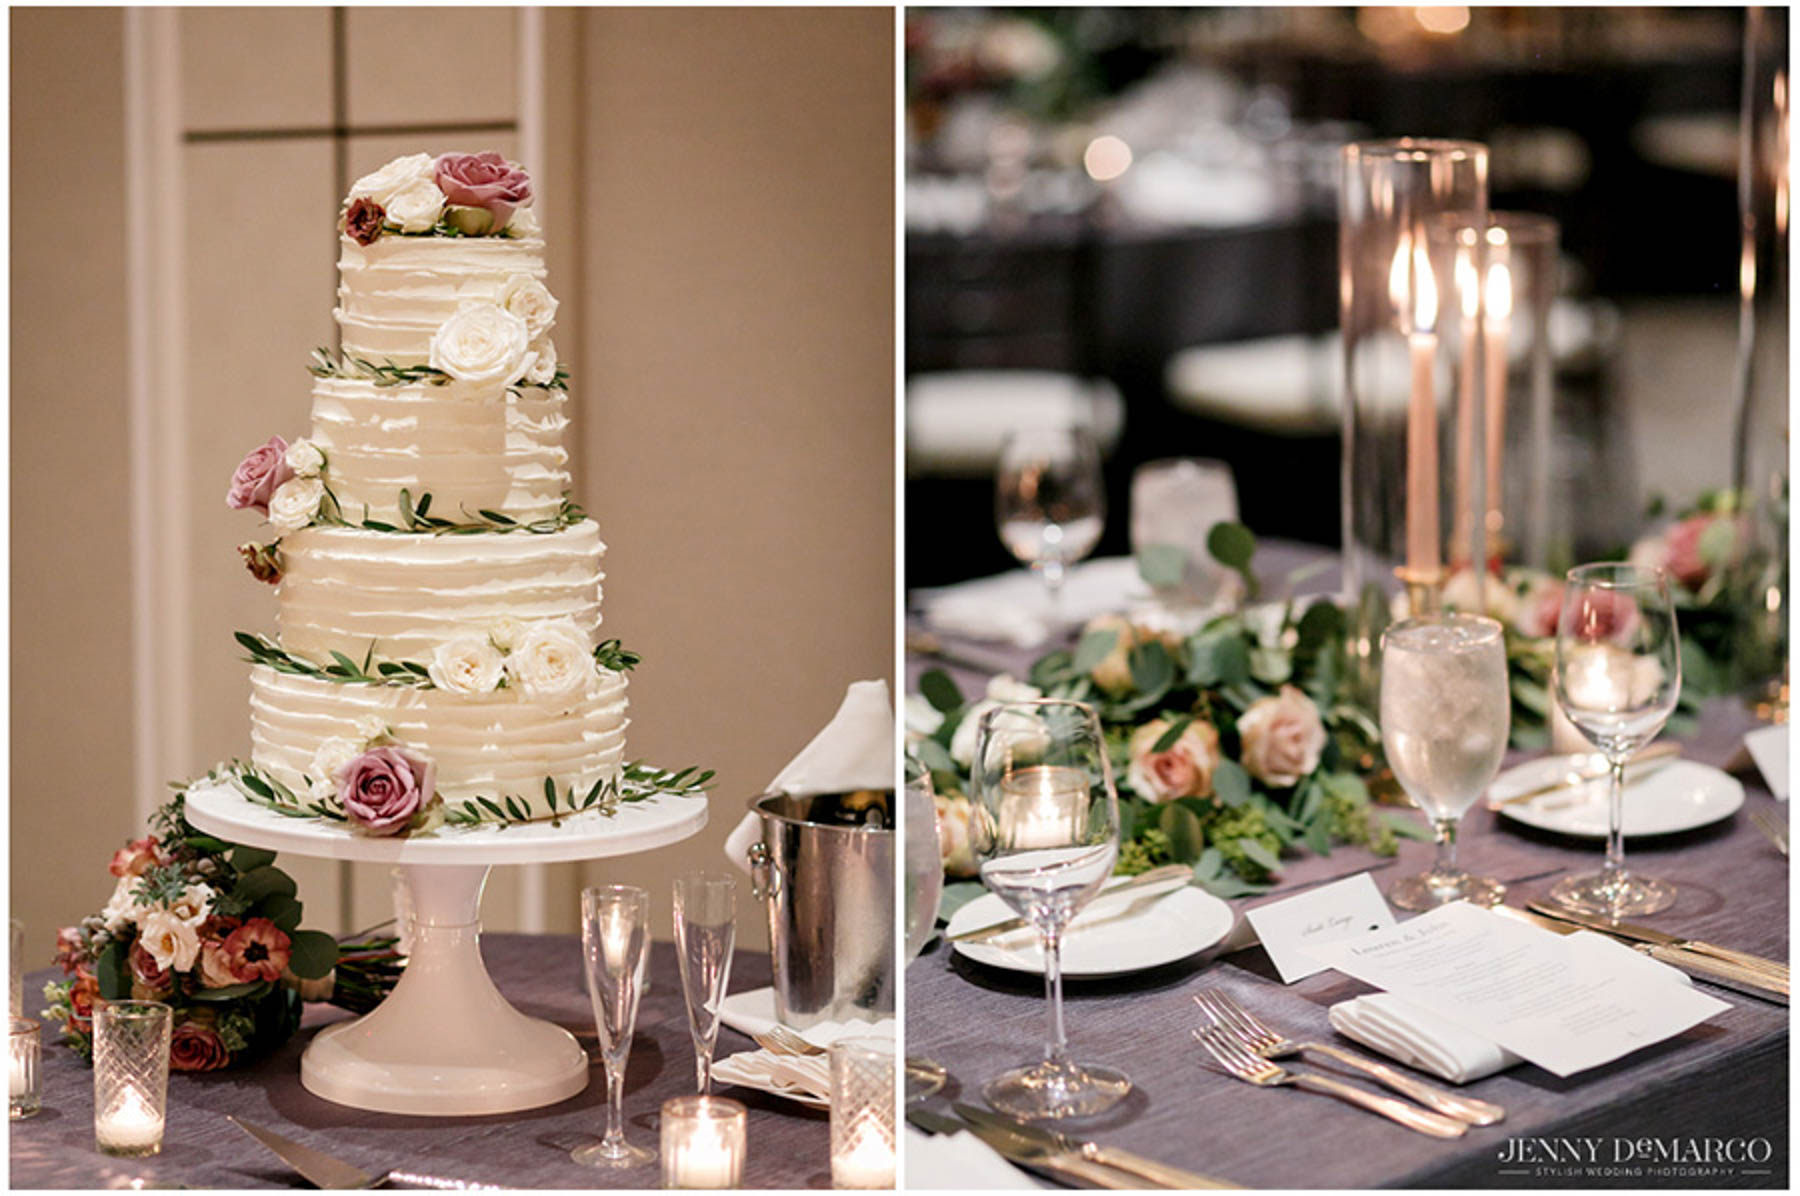 four tiered wedding cake and table setting with menu for guests